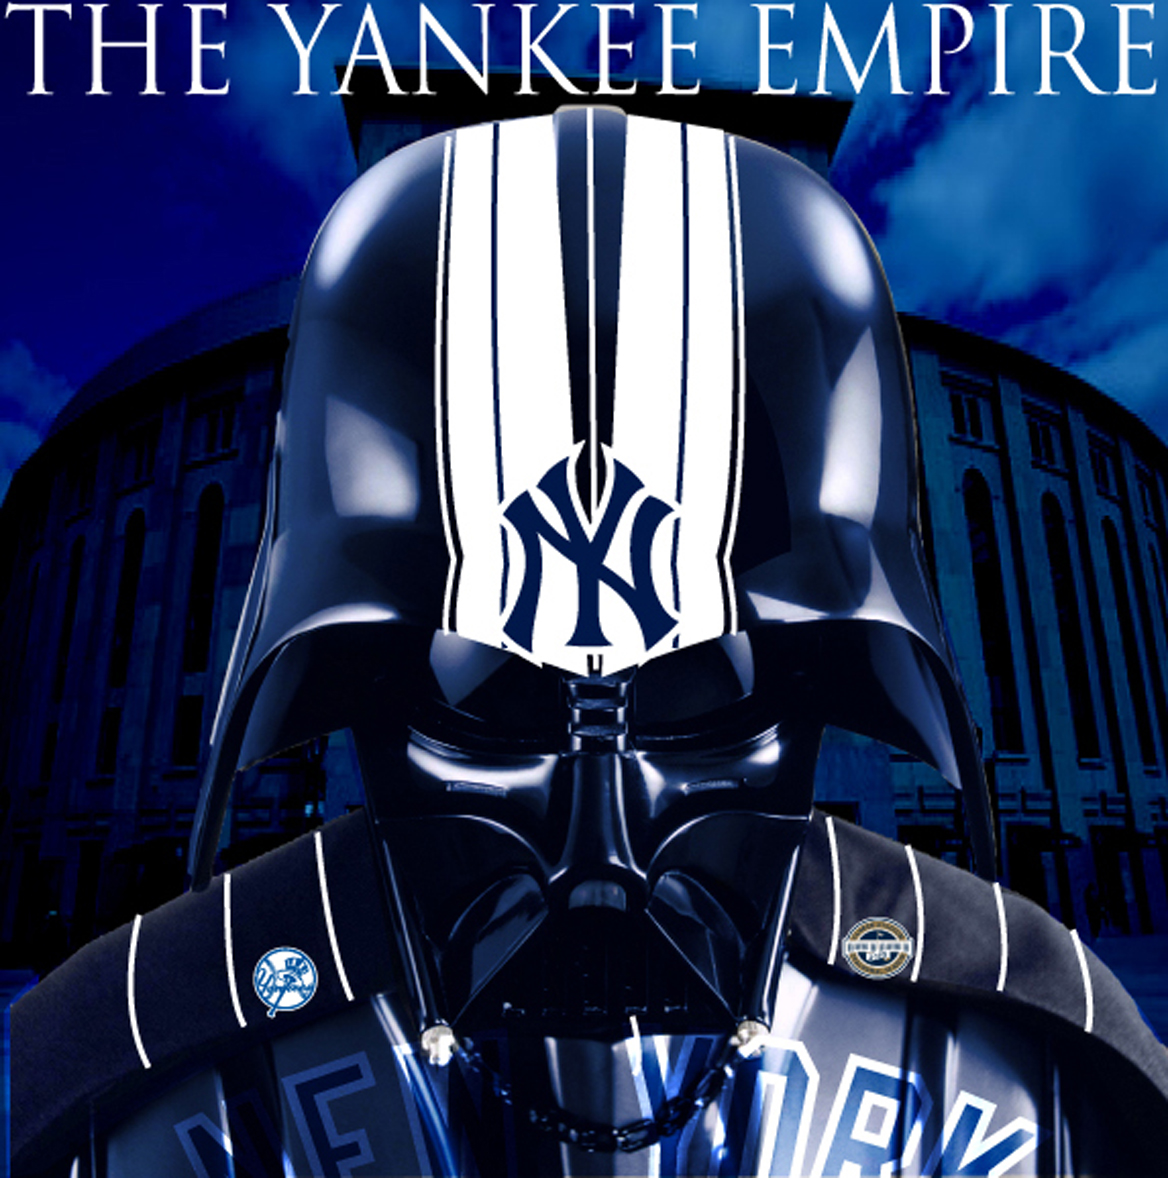 DARTH-VADER-EMPIRE.jpg